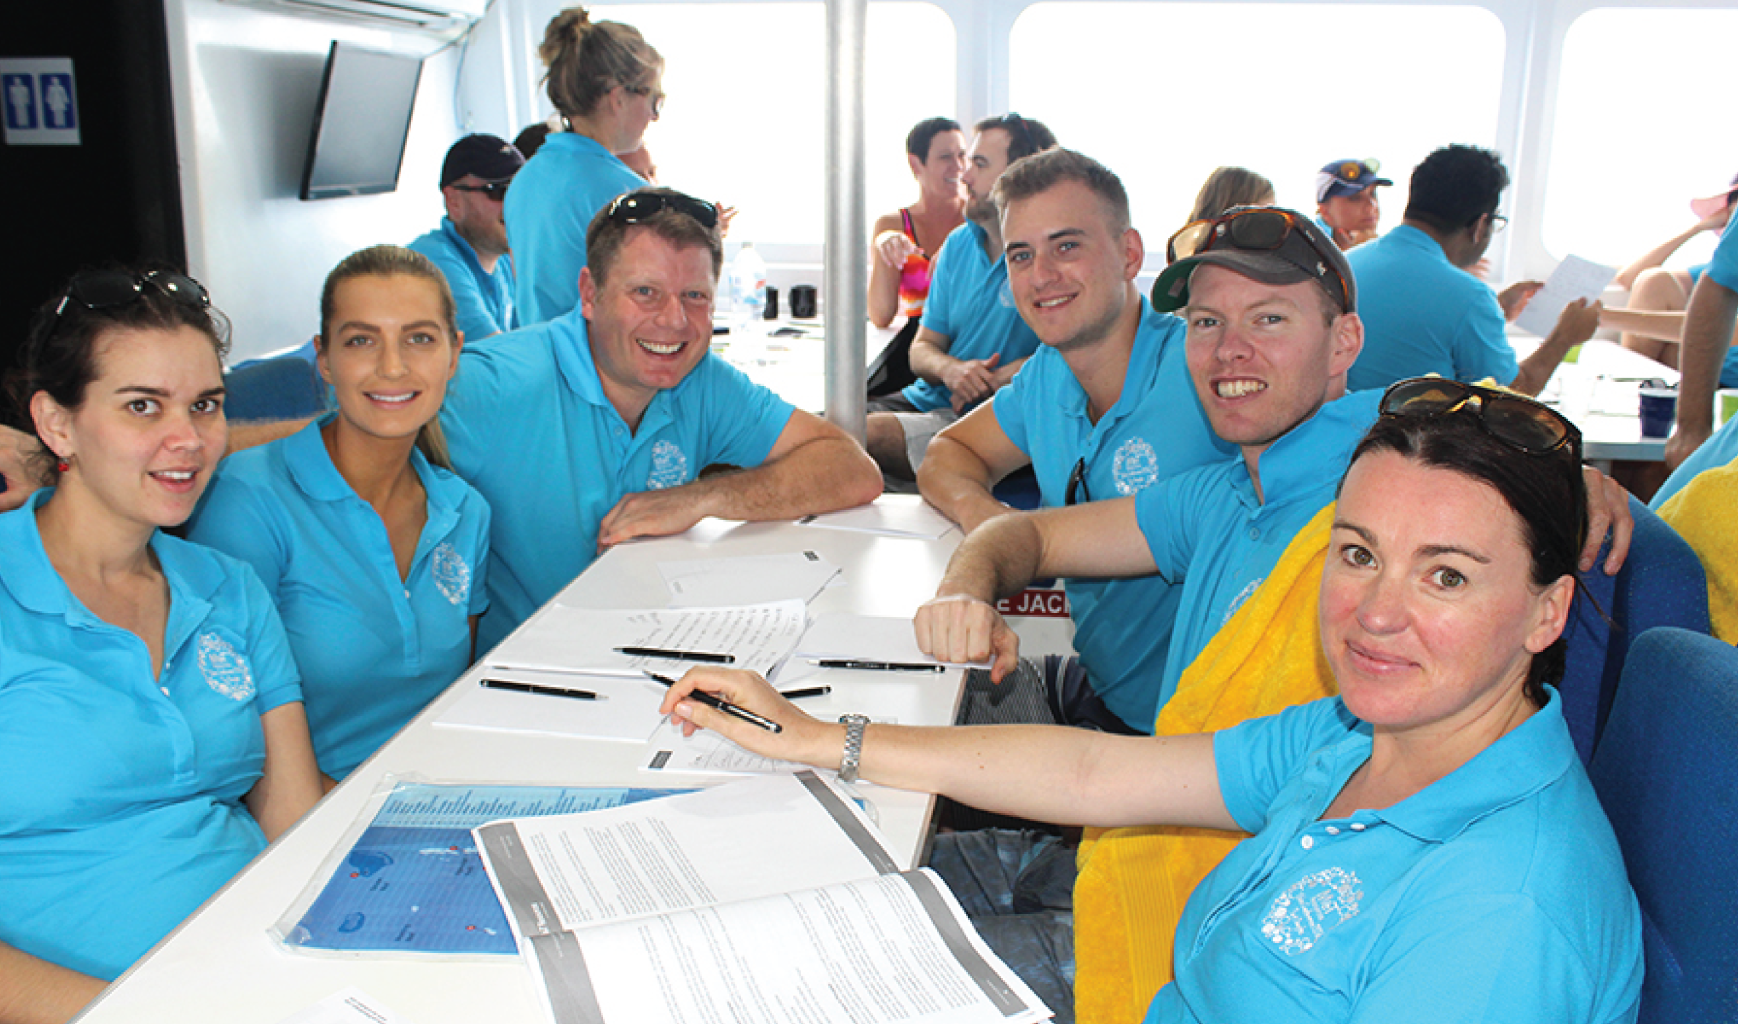 Recruitment, Values, IT Recruitment, Sales Conference, Port Douglas, Coral Reef